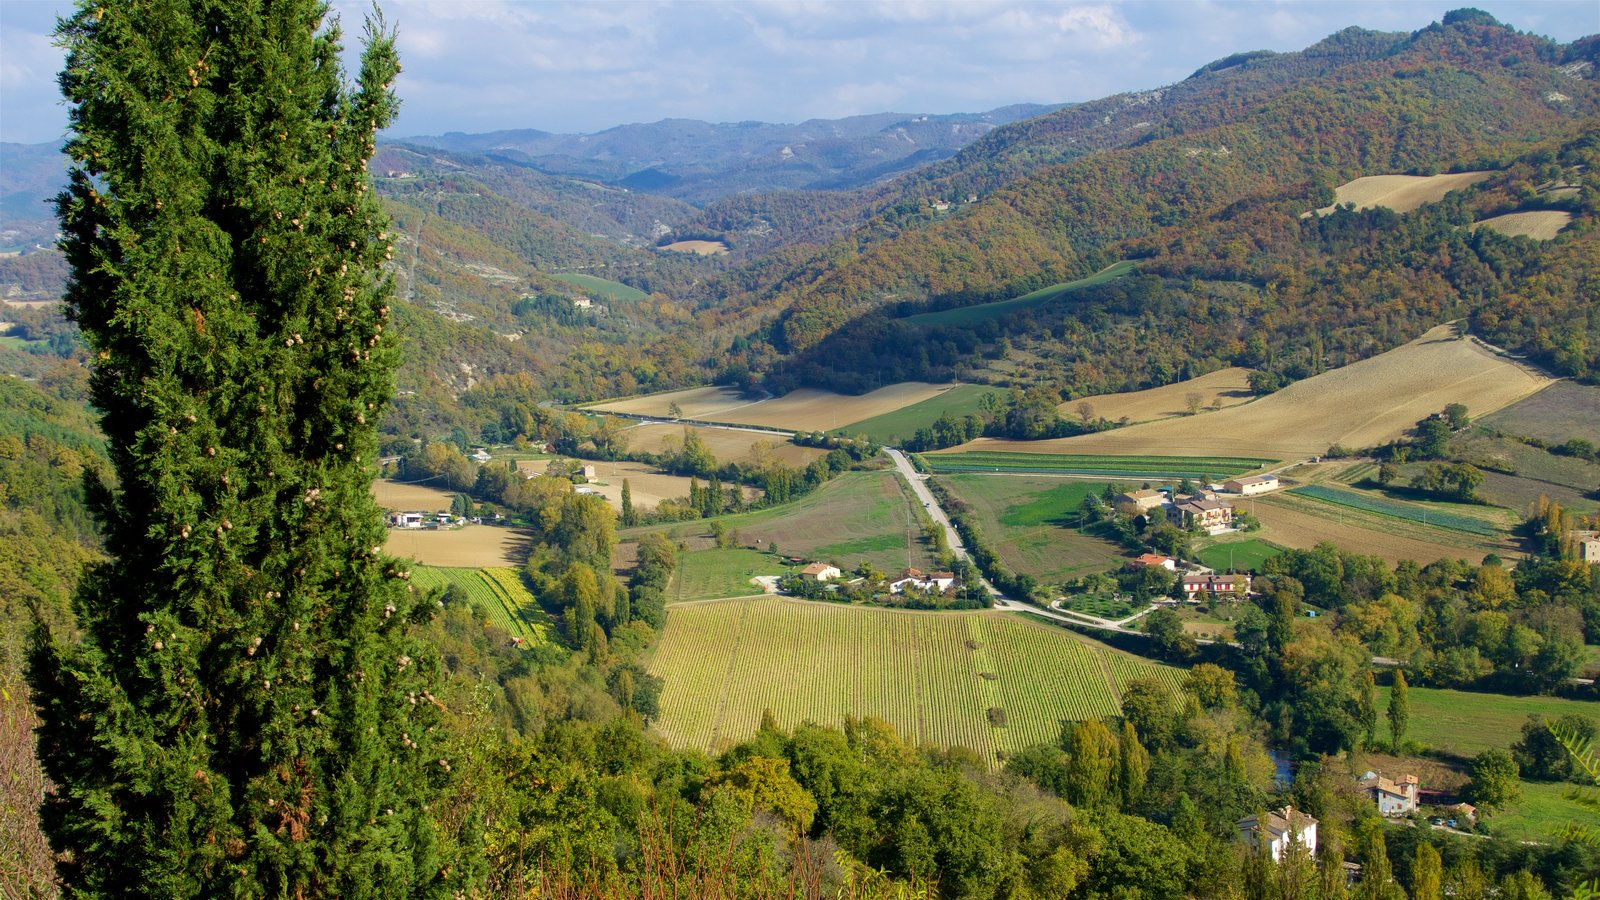 Montone showing tranquil scenes